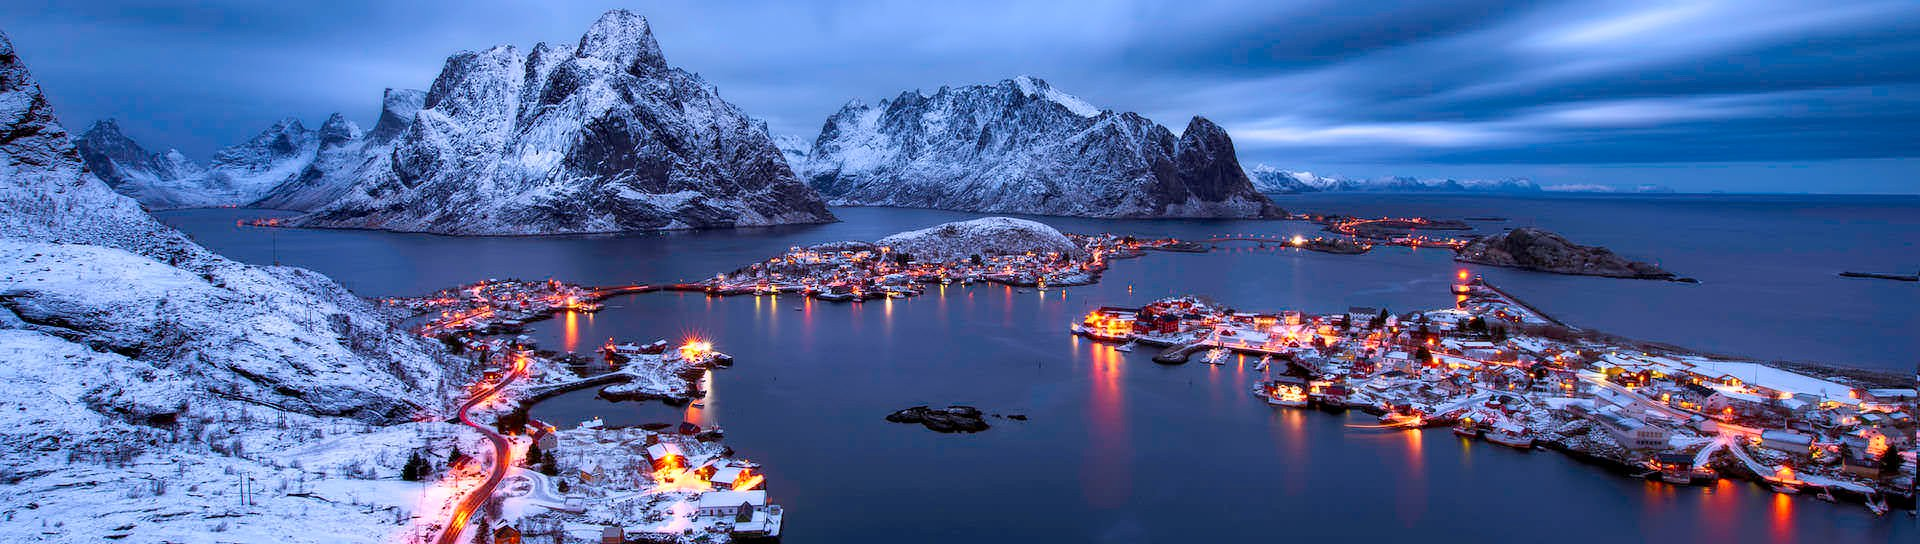 Explore the picturesque sceneries of winter Norway on your Scandinavia tour